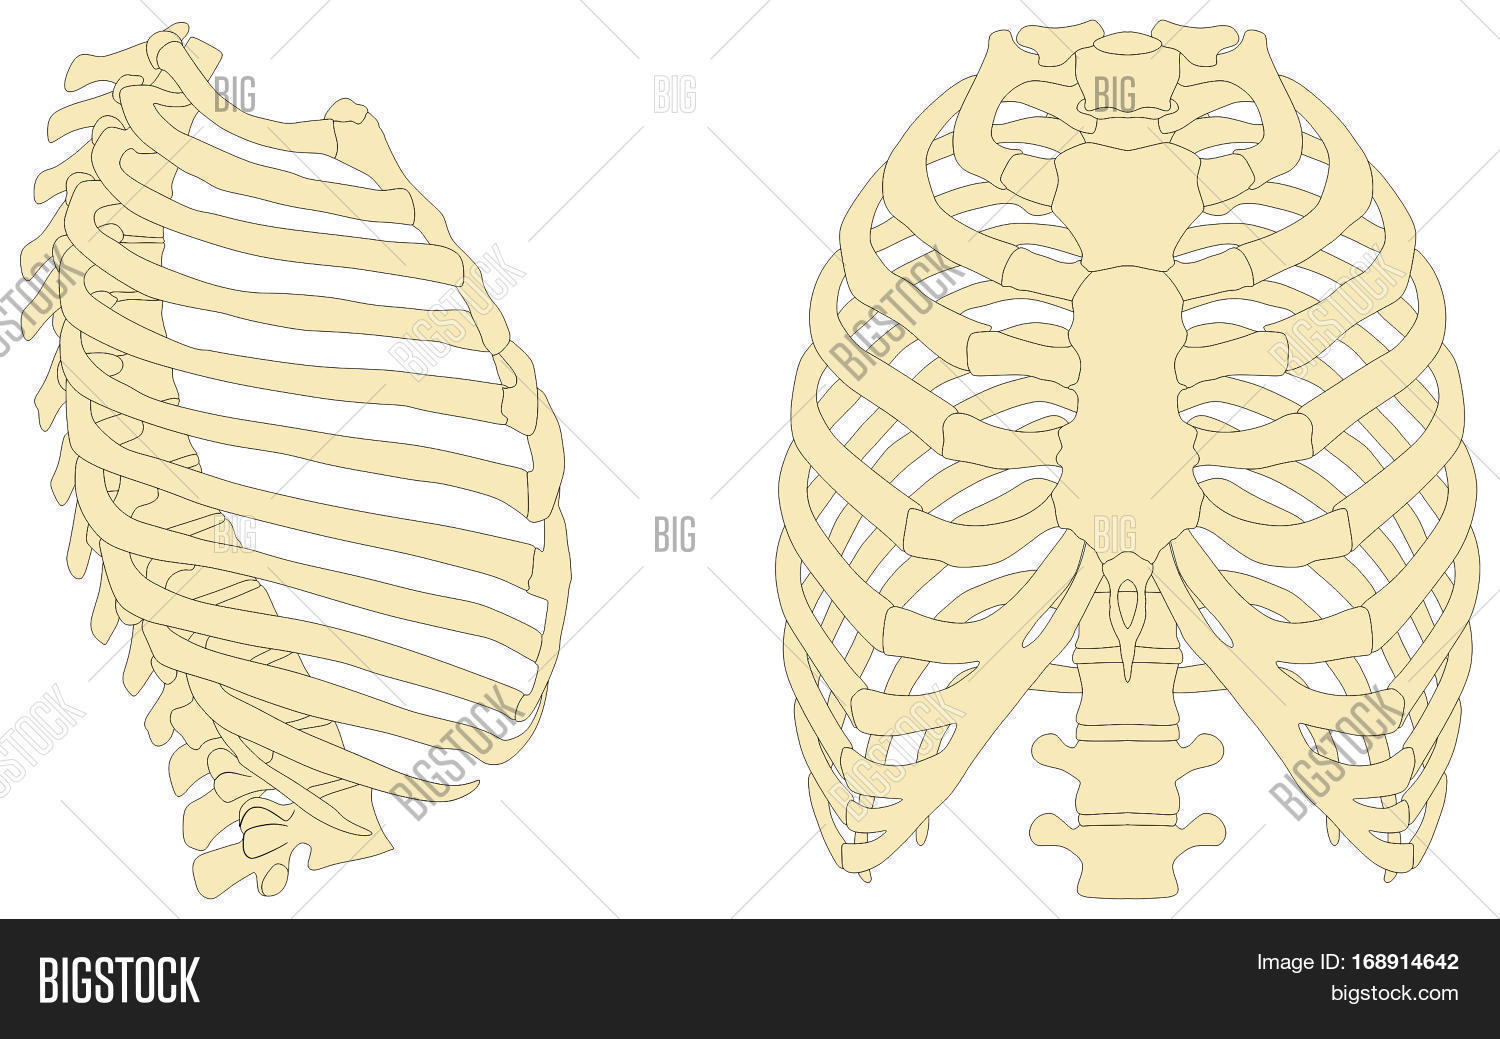 Human Rib Cage Anatomy Image Photo Free Trial Bigstock